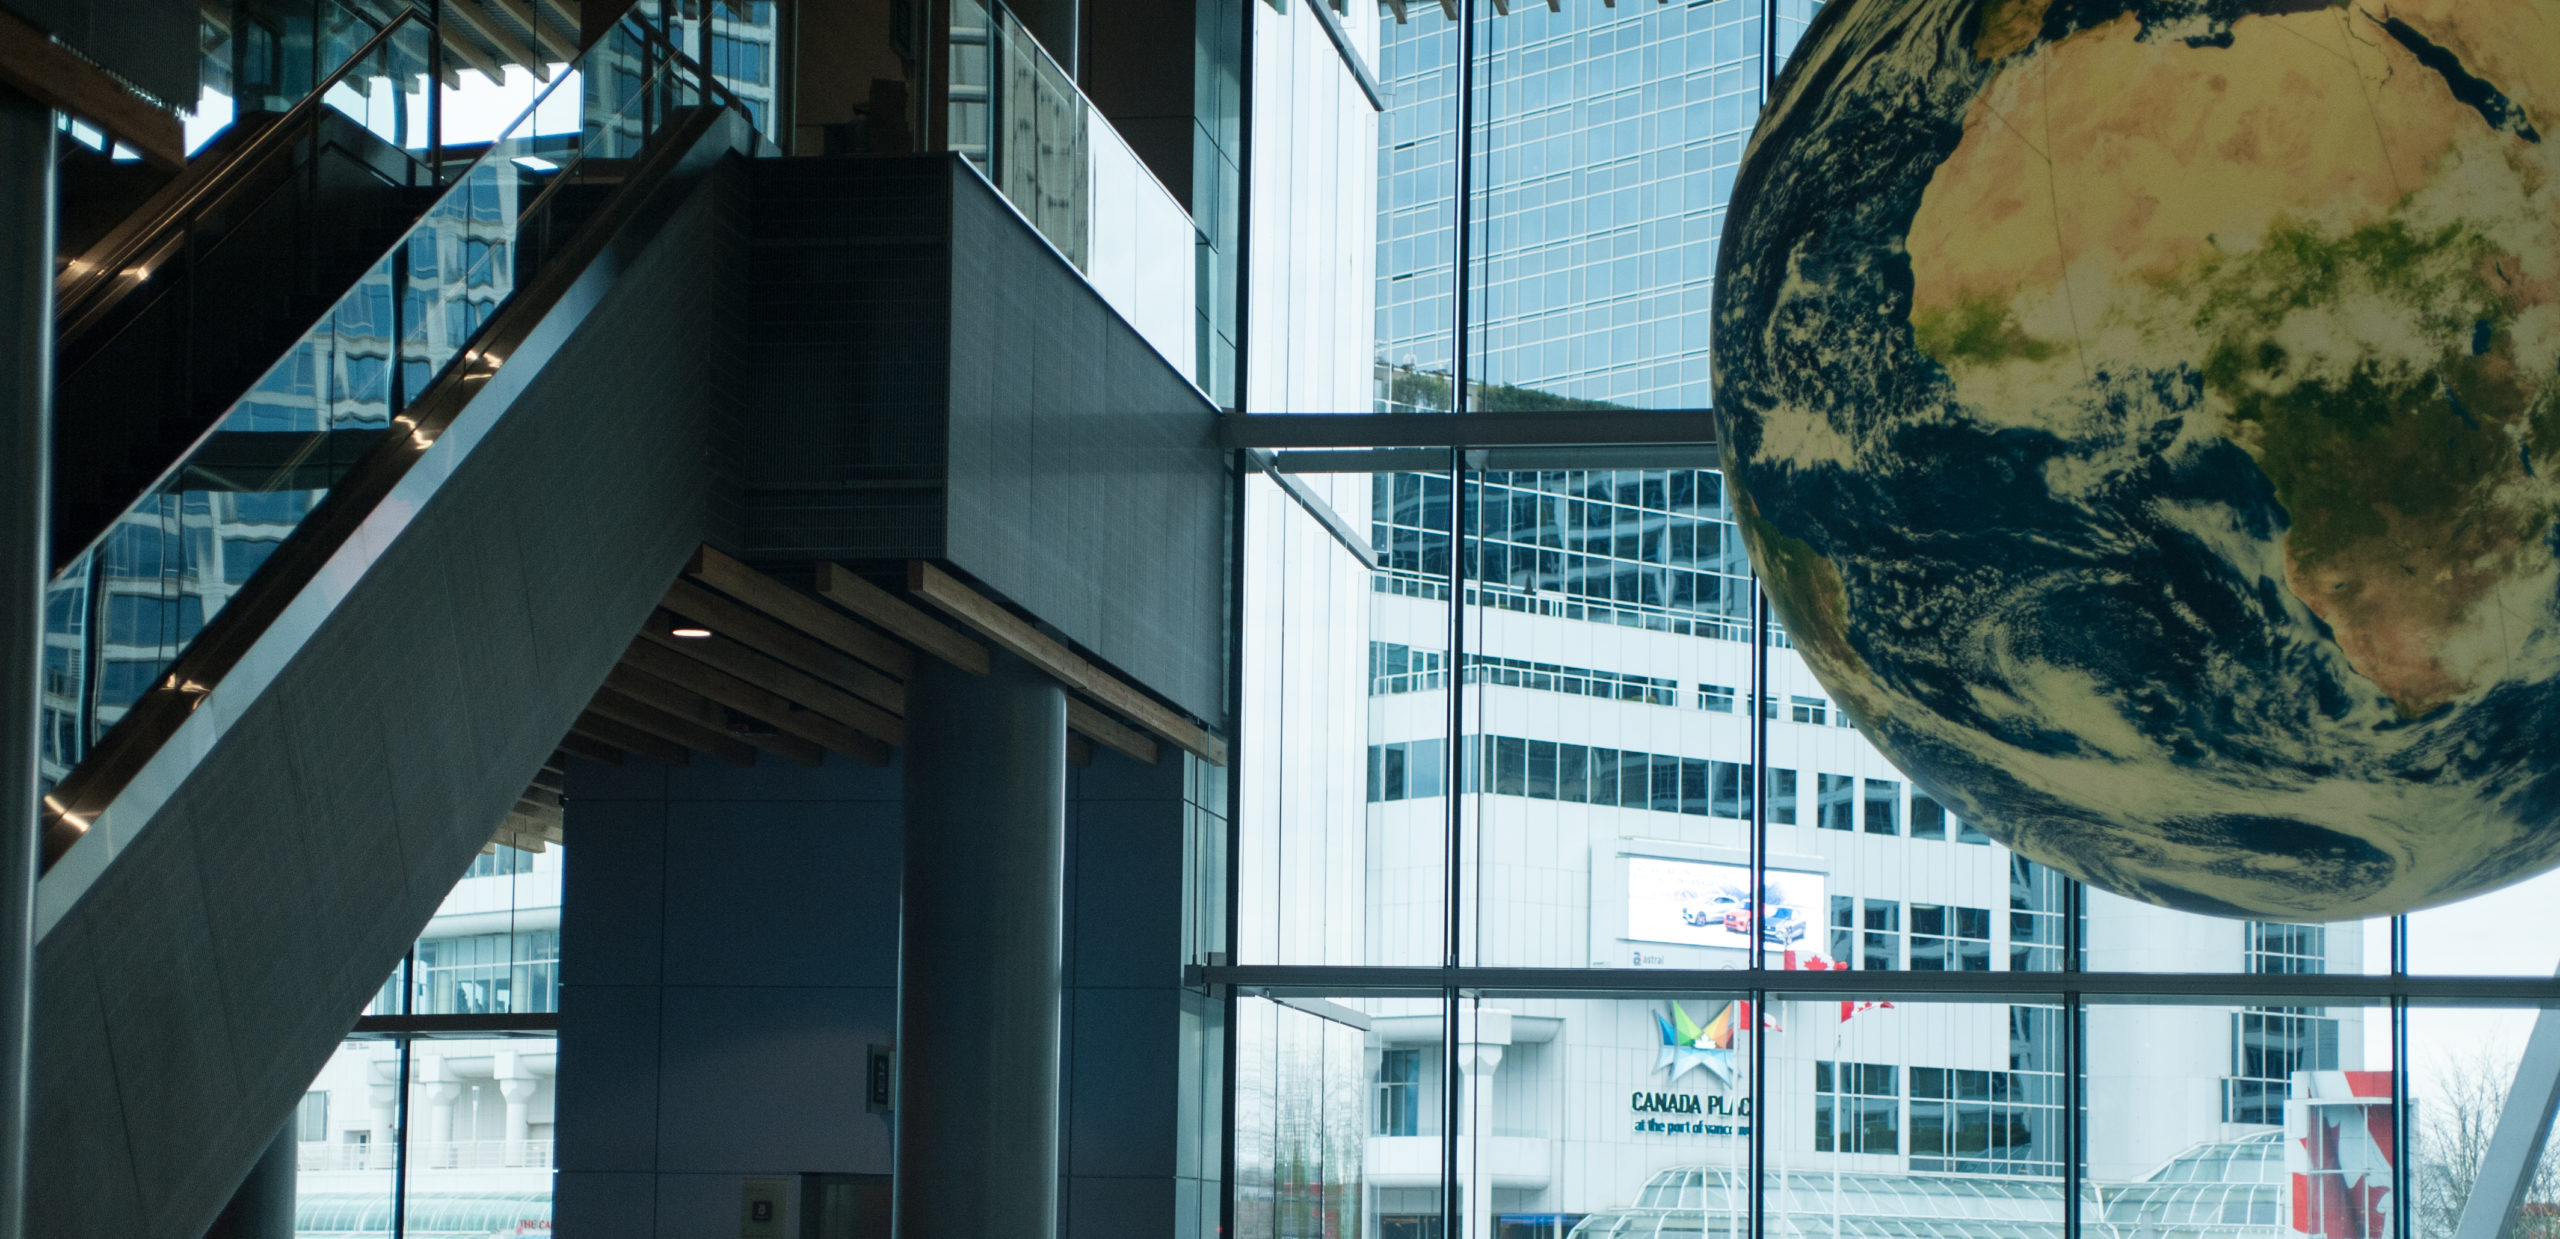 Photo from inside one entrance of the Vancouver Convention Center.